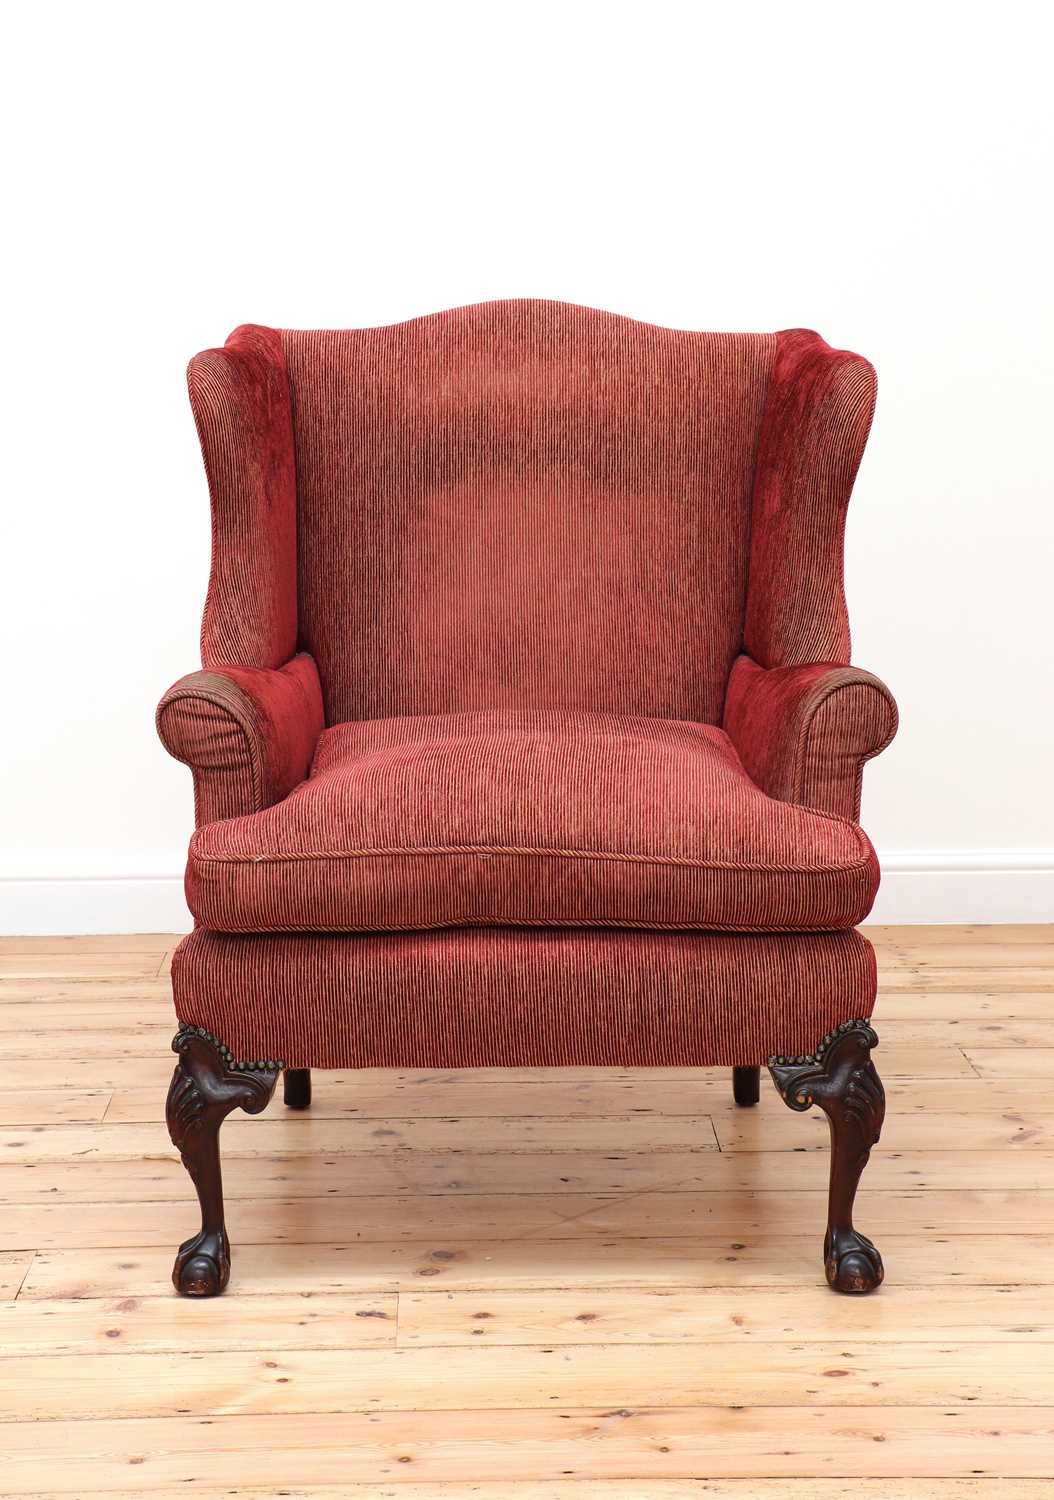 A George III-style mahogany-framed wingback armchair, - Image 2 of 5